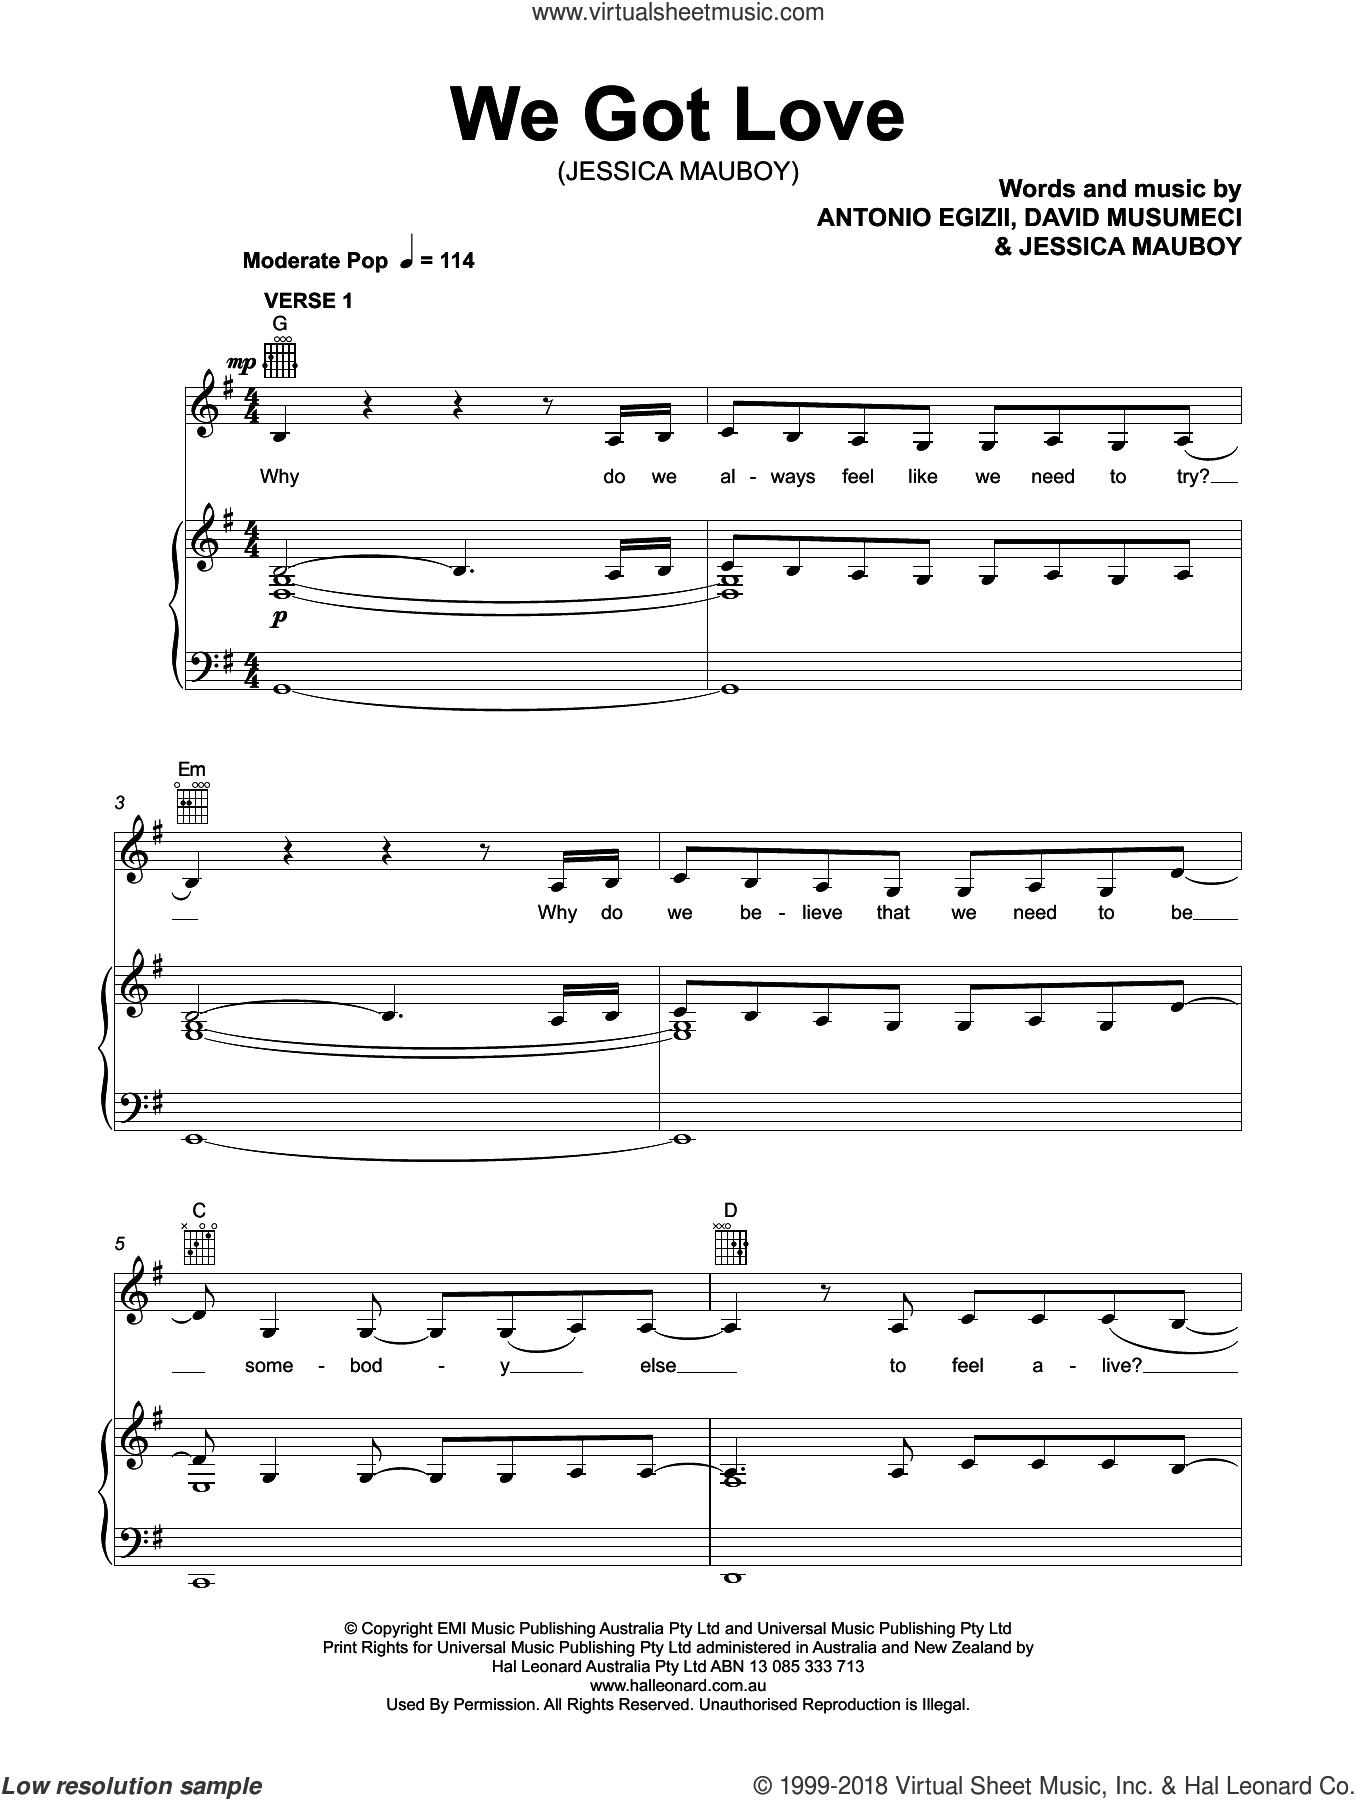 We Got Love sheet music for voice, piano or guitar by Jessica Mauboy, Antonio Egizii and David Musumeci, intermediate skill level